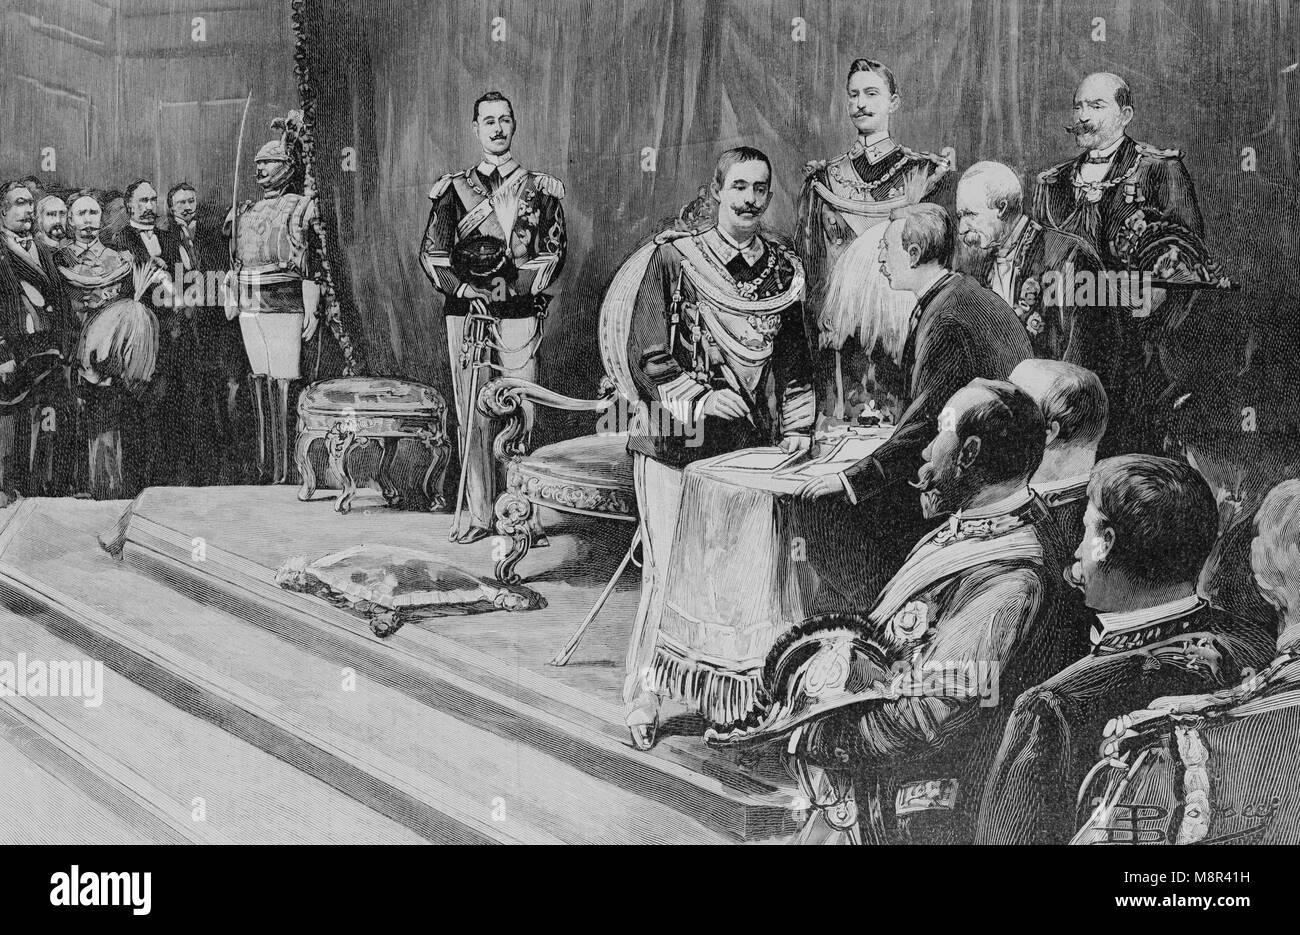 King Victor Emmanuel III of Italy during his coronation, Picture from the French weekly newspaper l'Illustration, - Stock Image